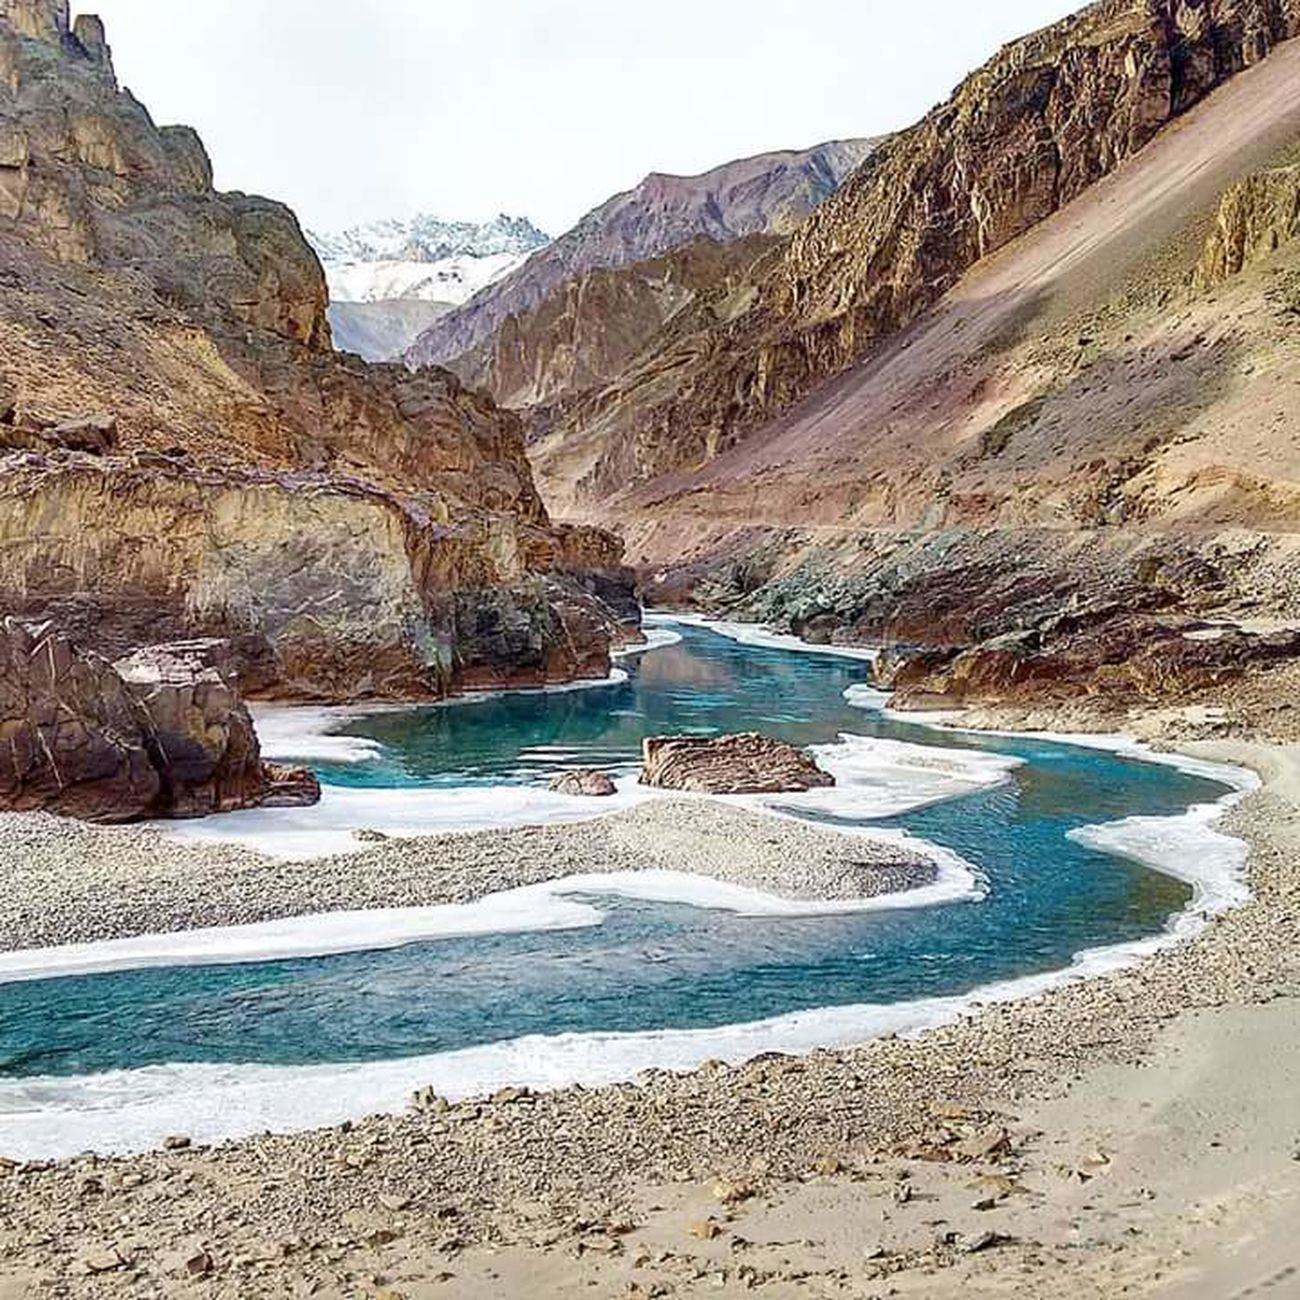 The River Zanskar  in Leh ... the Himalayas have an Awesome Beauty Traveladdict Travelandlife Igindia Igers Photooftheday Instagramers Mountains BBCTravel Nature LiveYourAdventure Lonelyplanetphotos Paradise